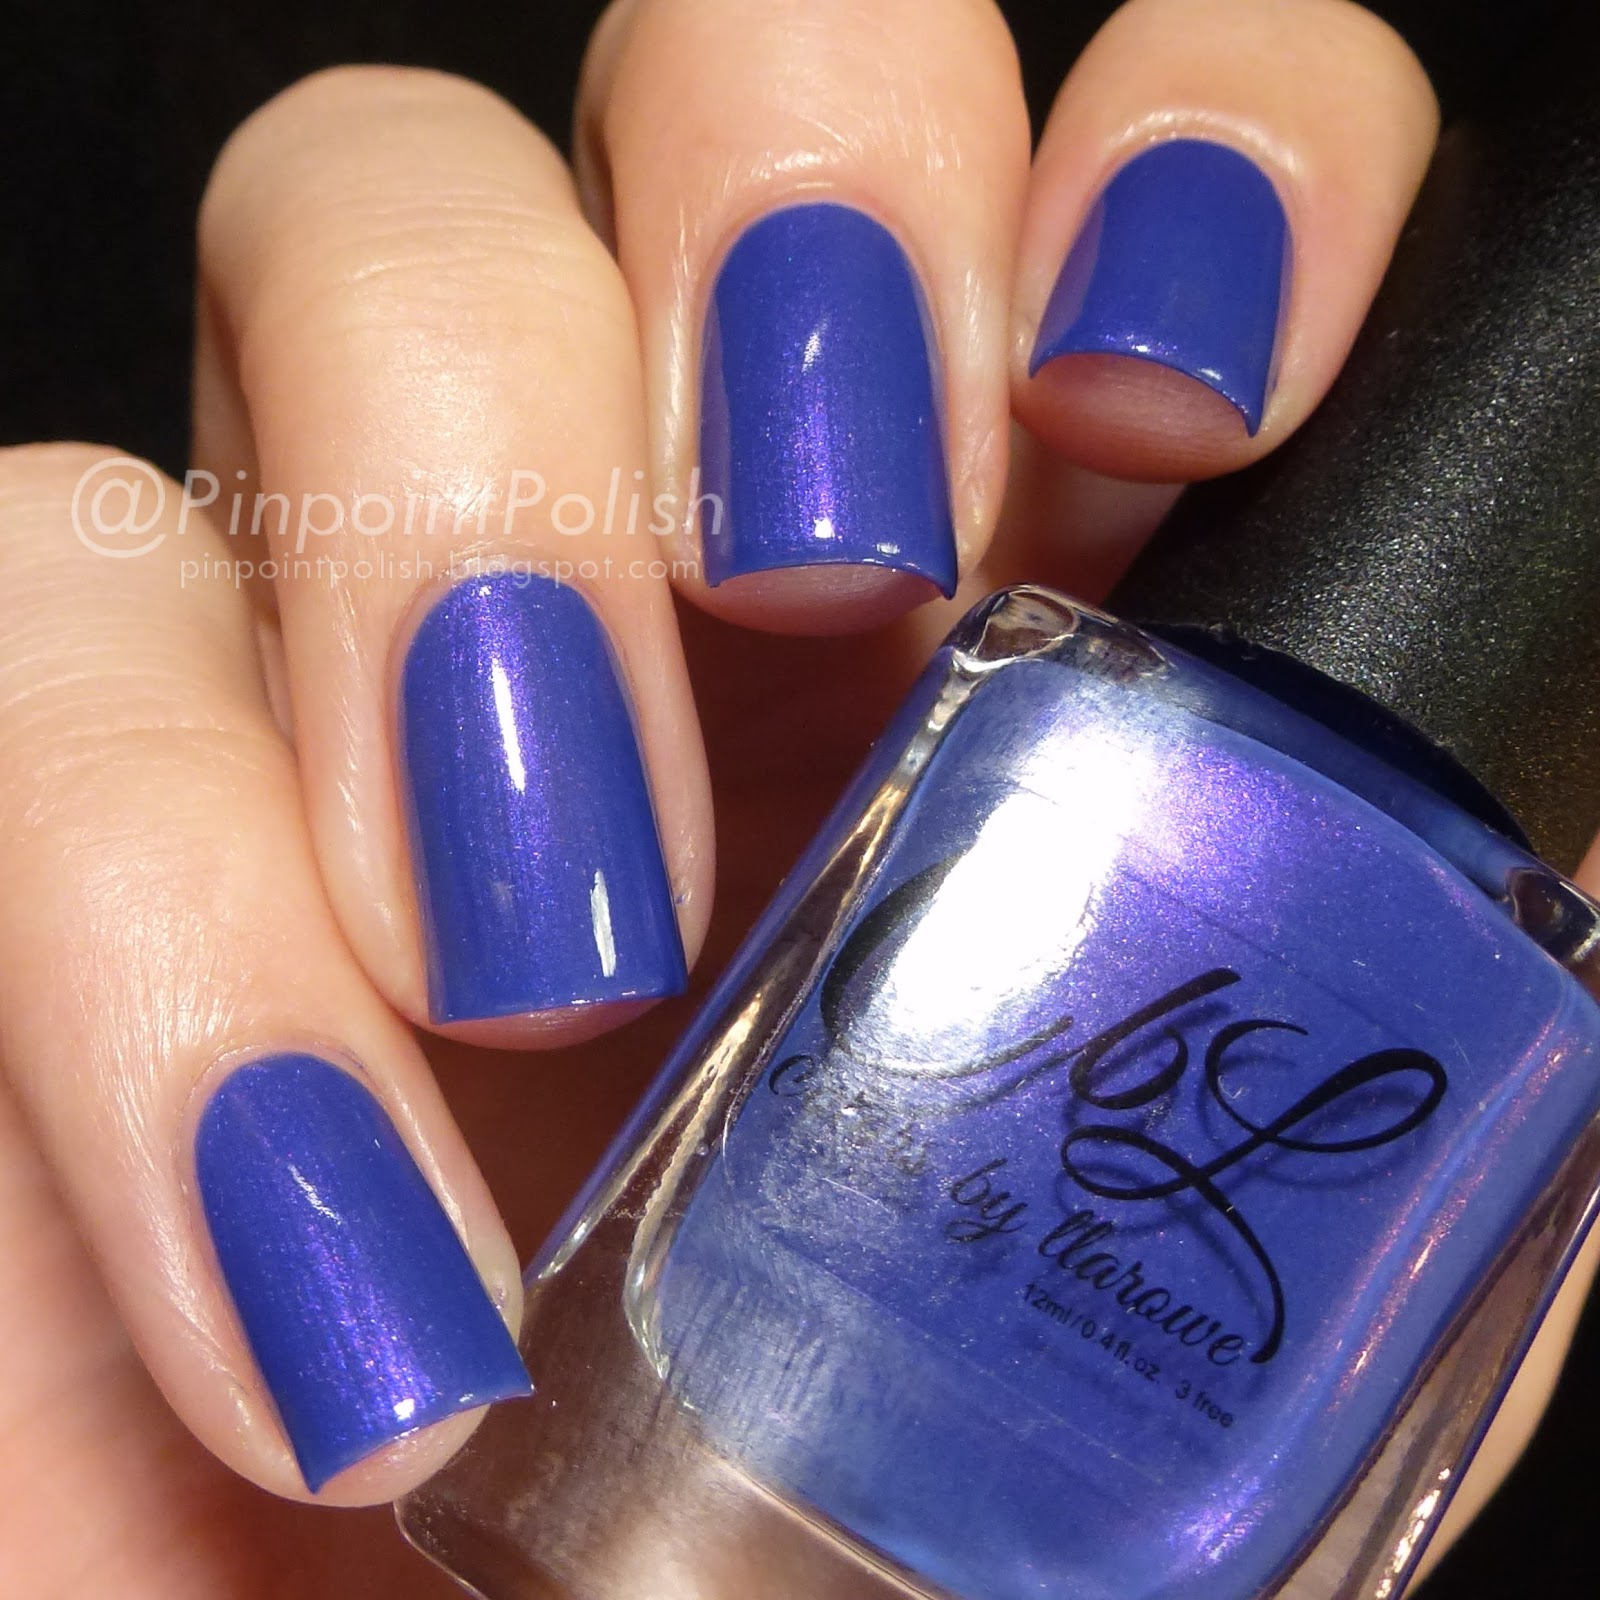 Blue Banana, colors by llarowe, swatch